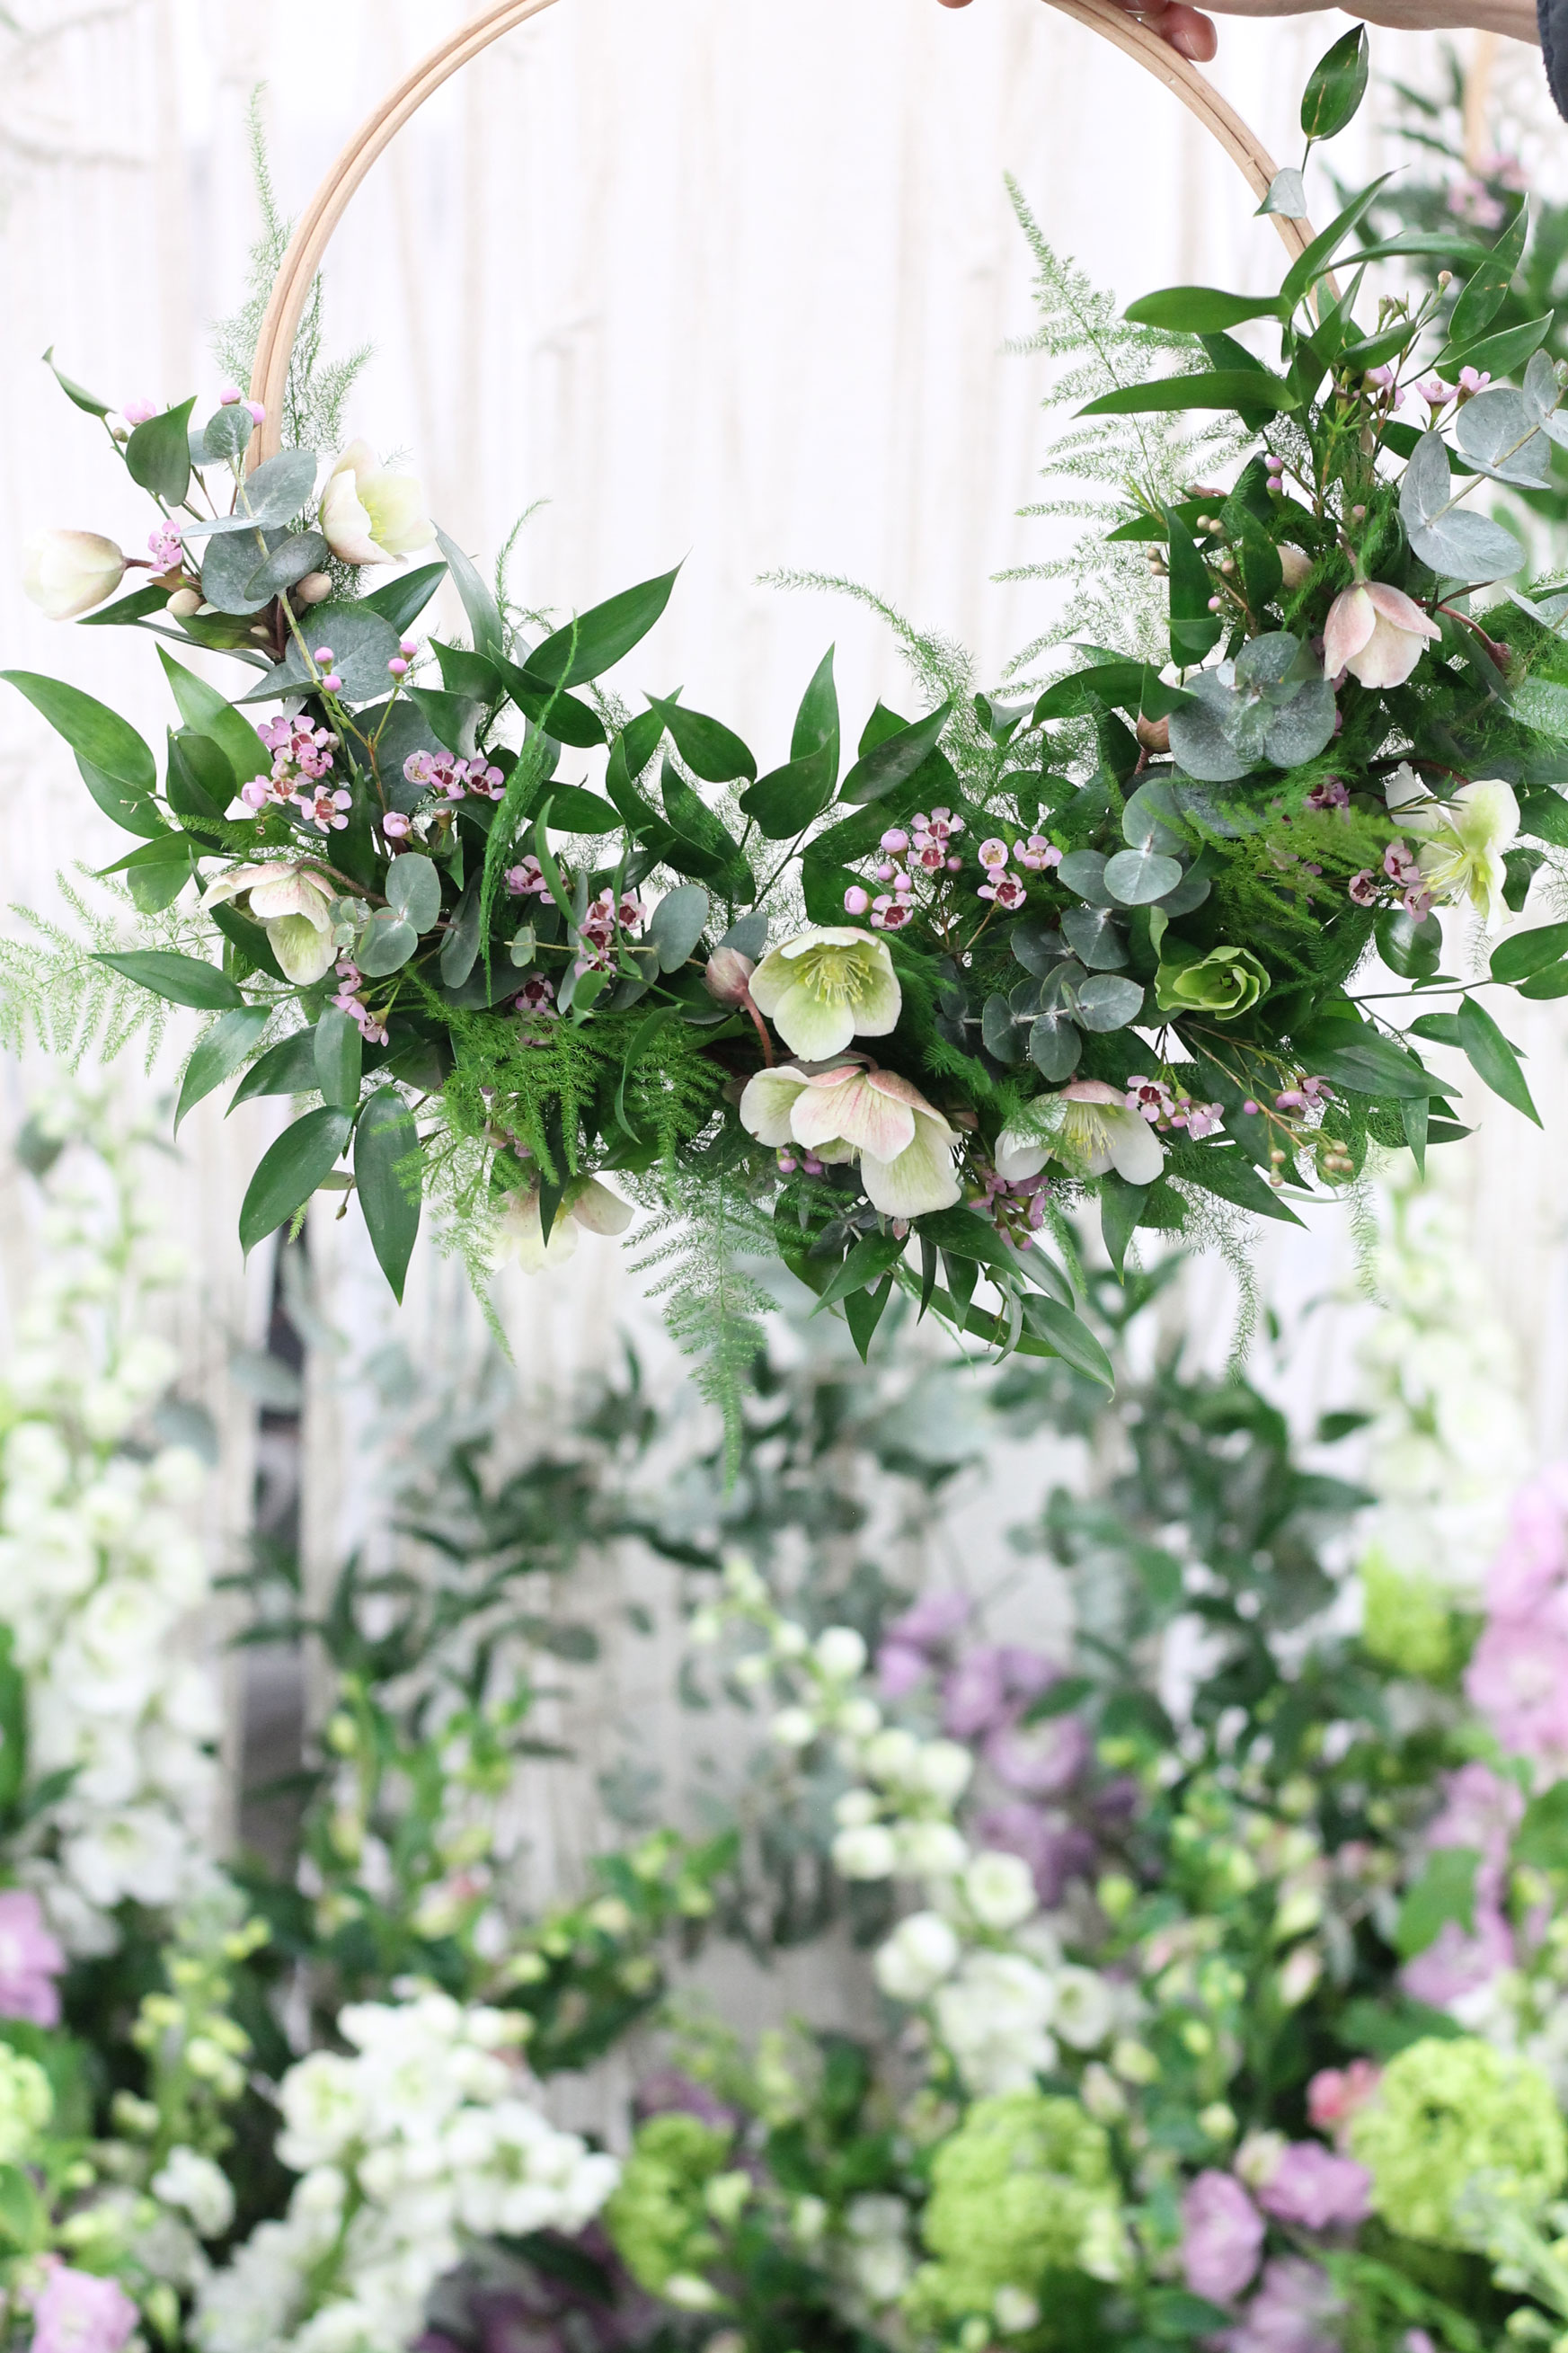 sarah-harper-floral-design-luxury-wedding-florist-flowers-oxfordshite-cotsworlds-gallery-IMG_9141-copy